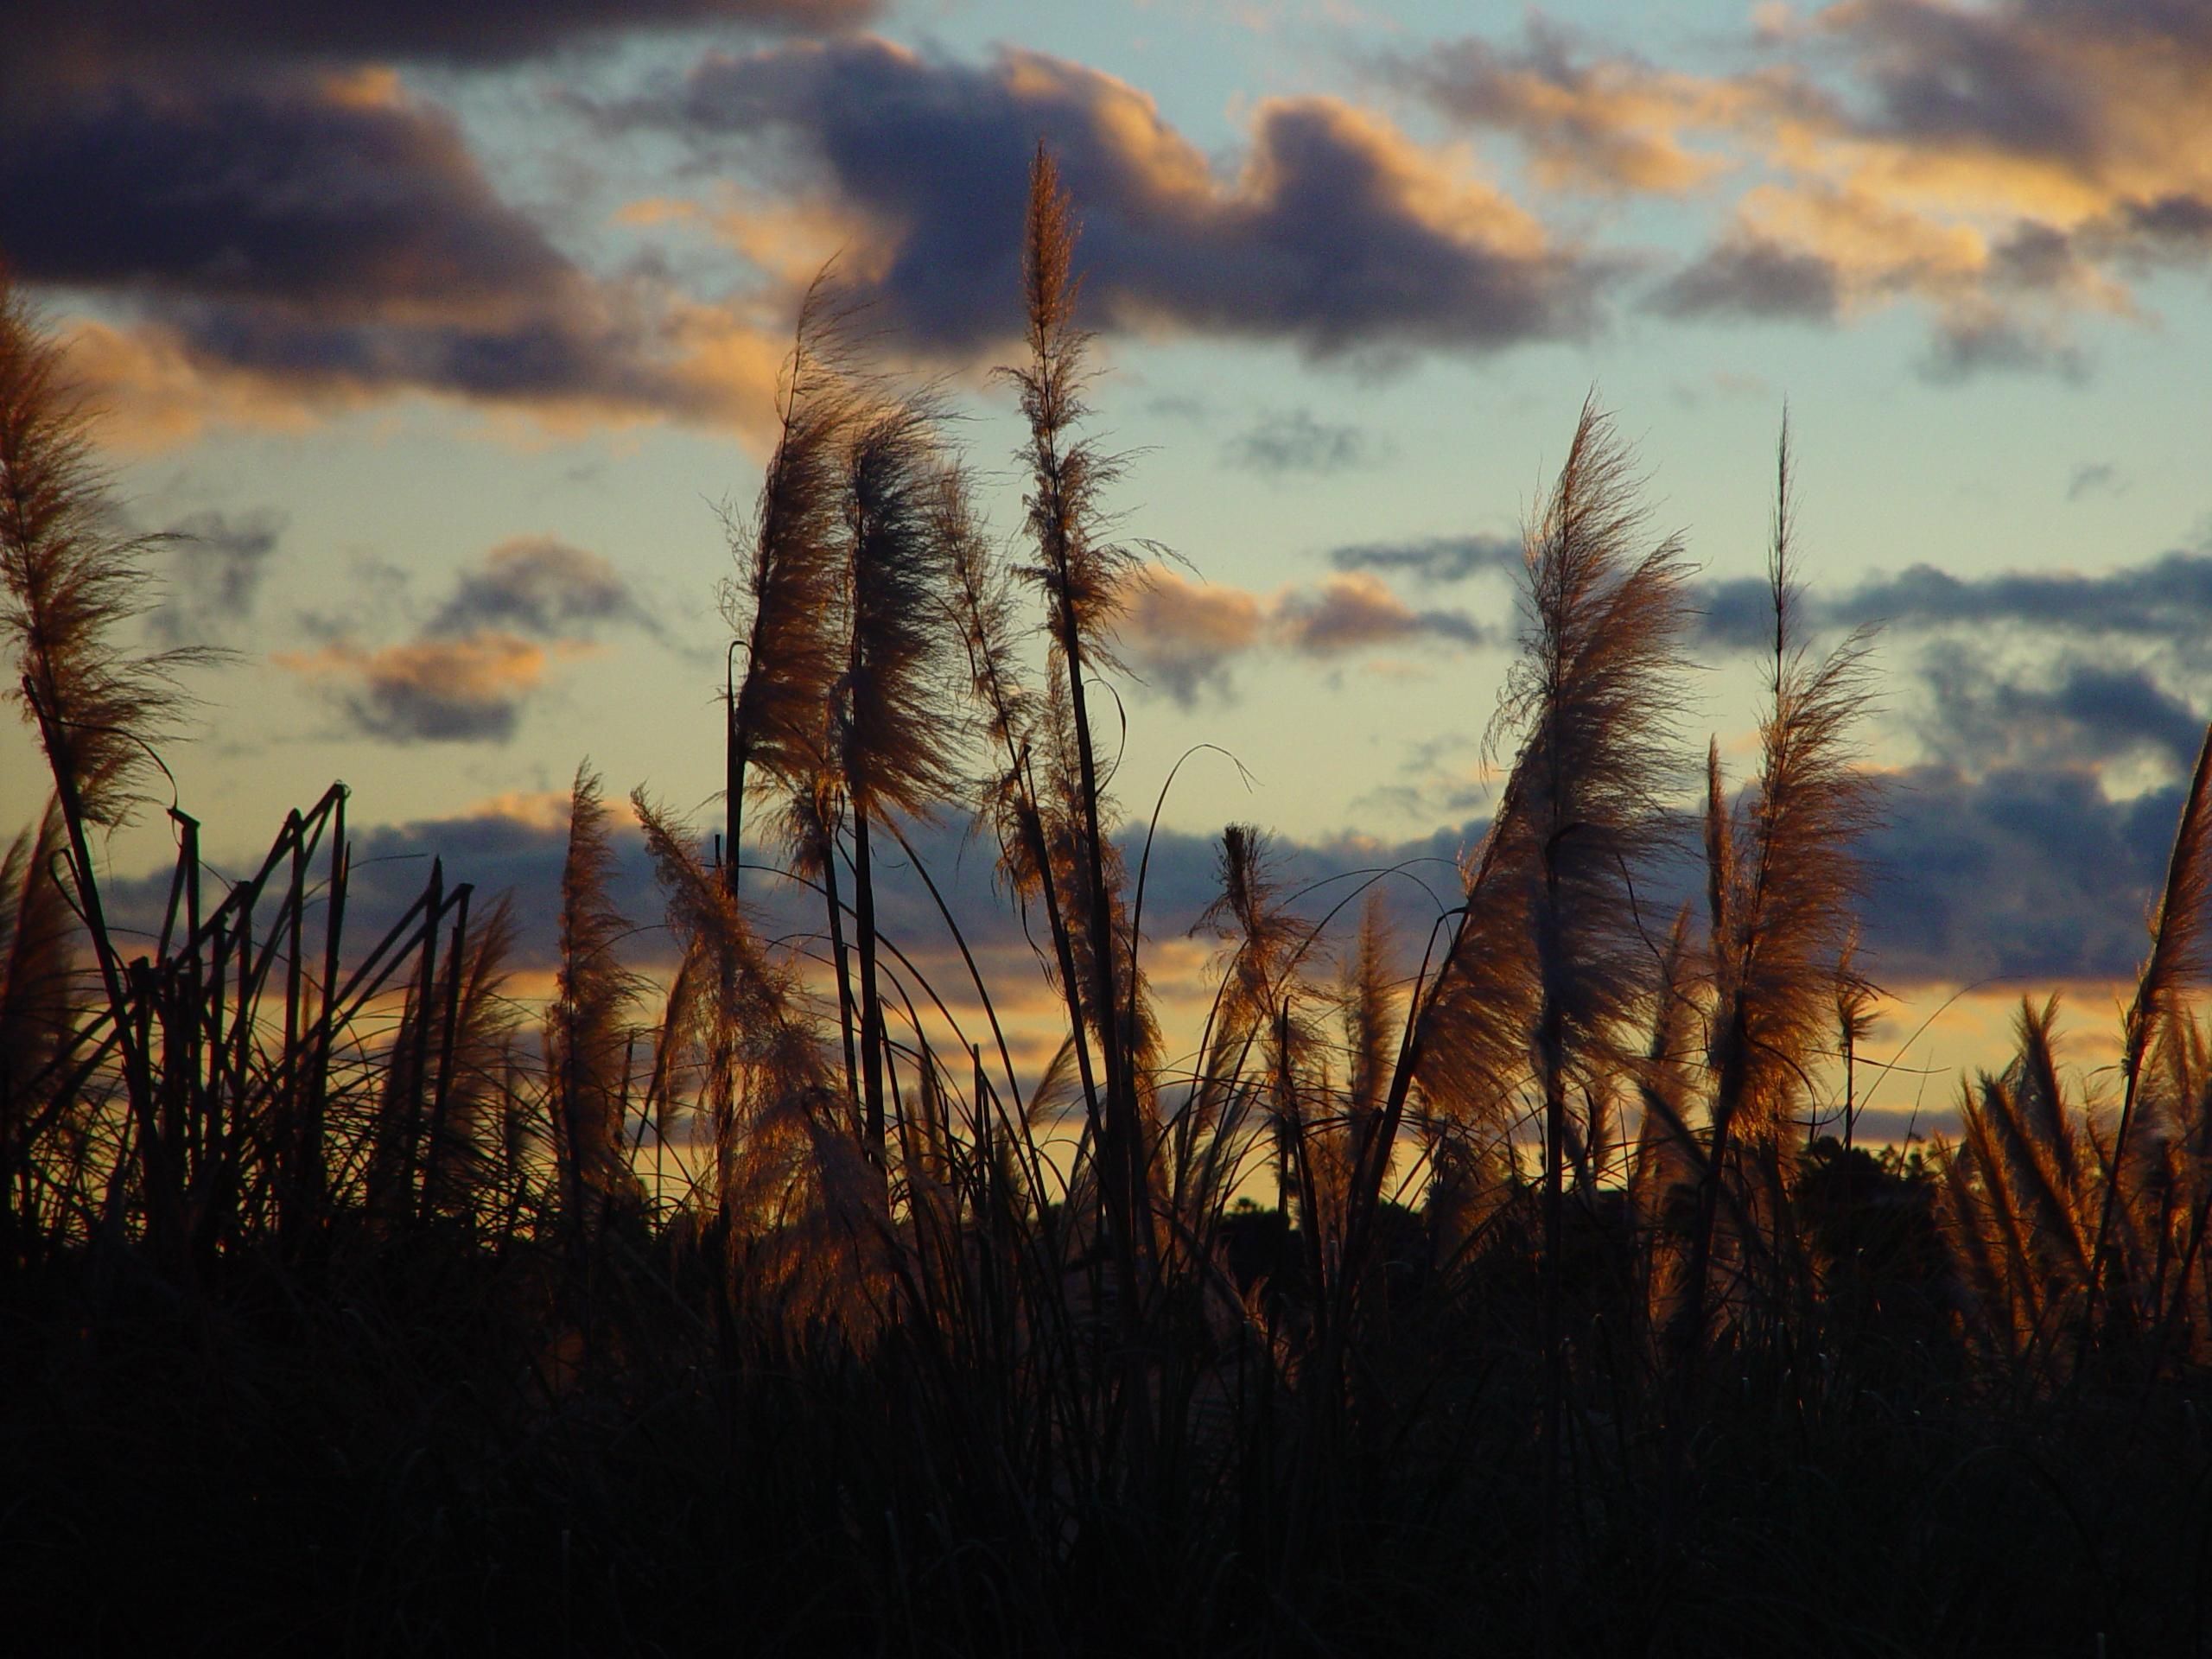 Sunset afterglow through reeds